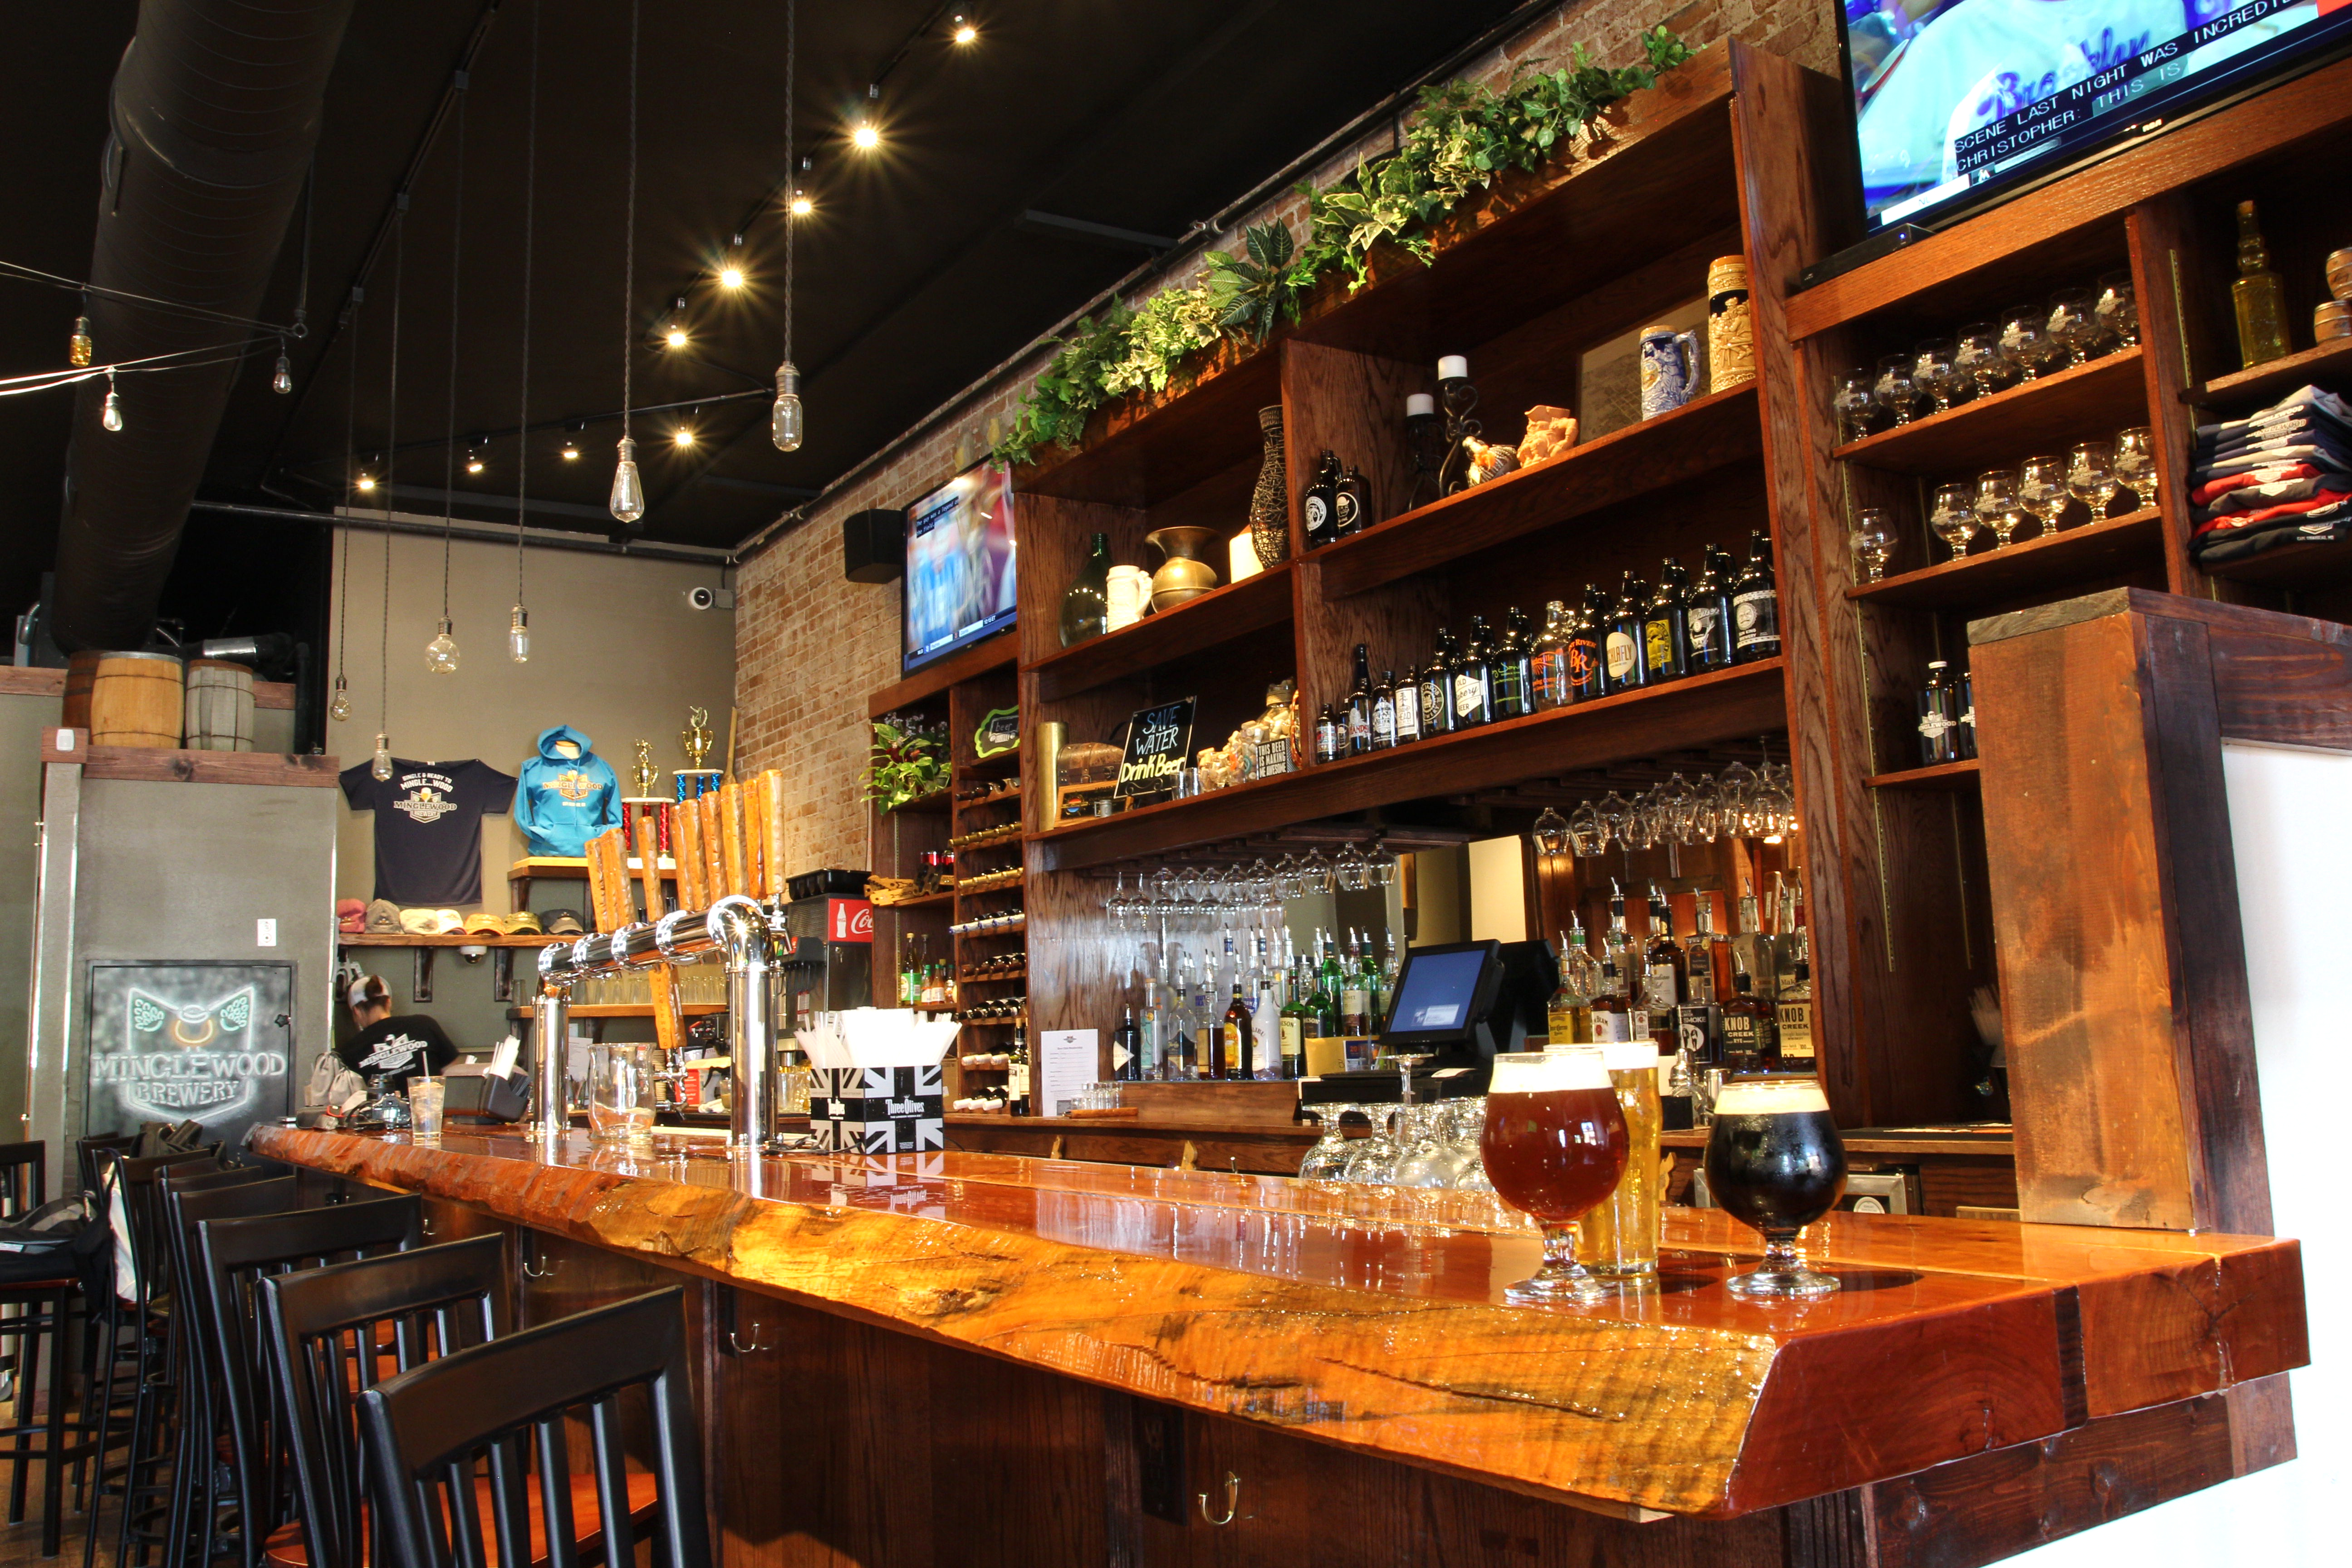 Minglewood Brewery Bar and eatery